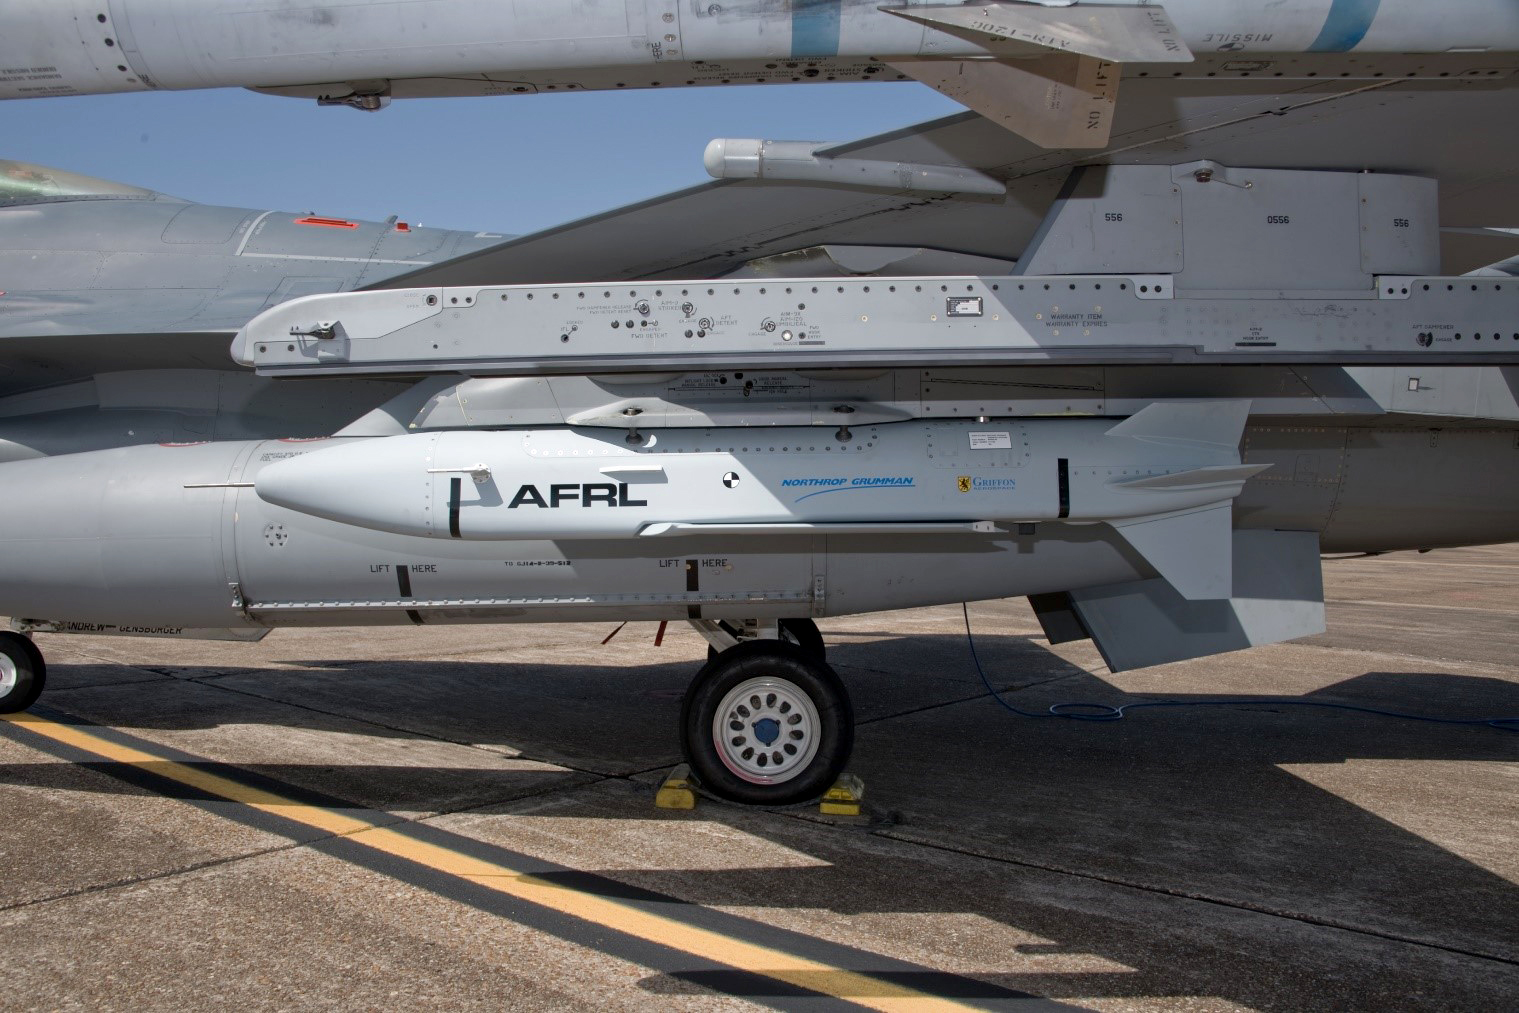 U.S. Air Force Research Laboratory Gray Wolf Low-Cost Turbojet Missile